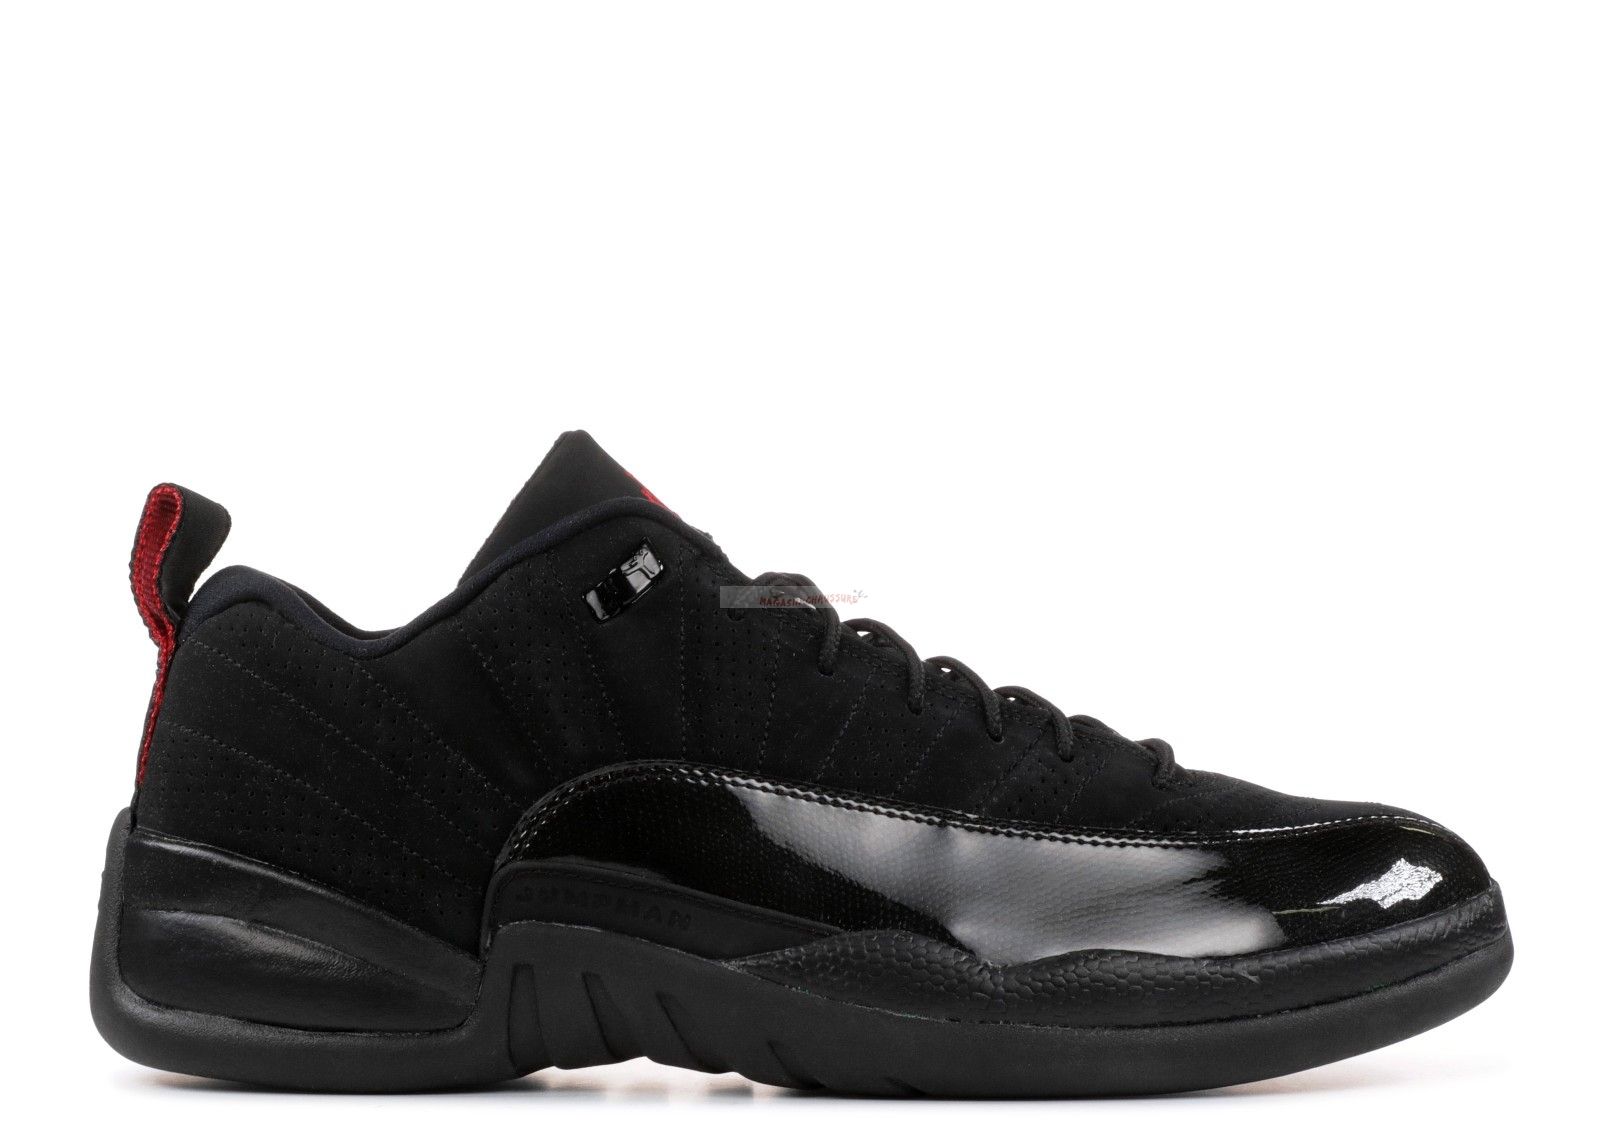 Air Jordan 12 Retro Low Noir (308317-001) Chaussure de Basket